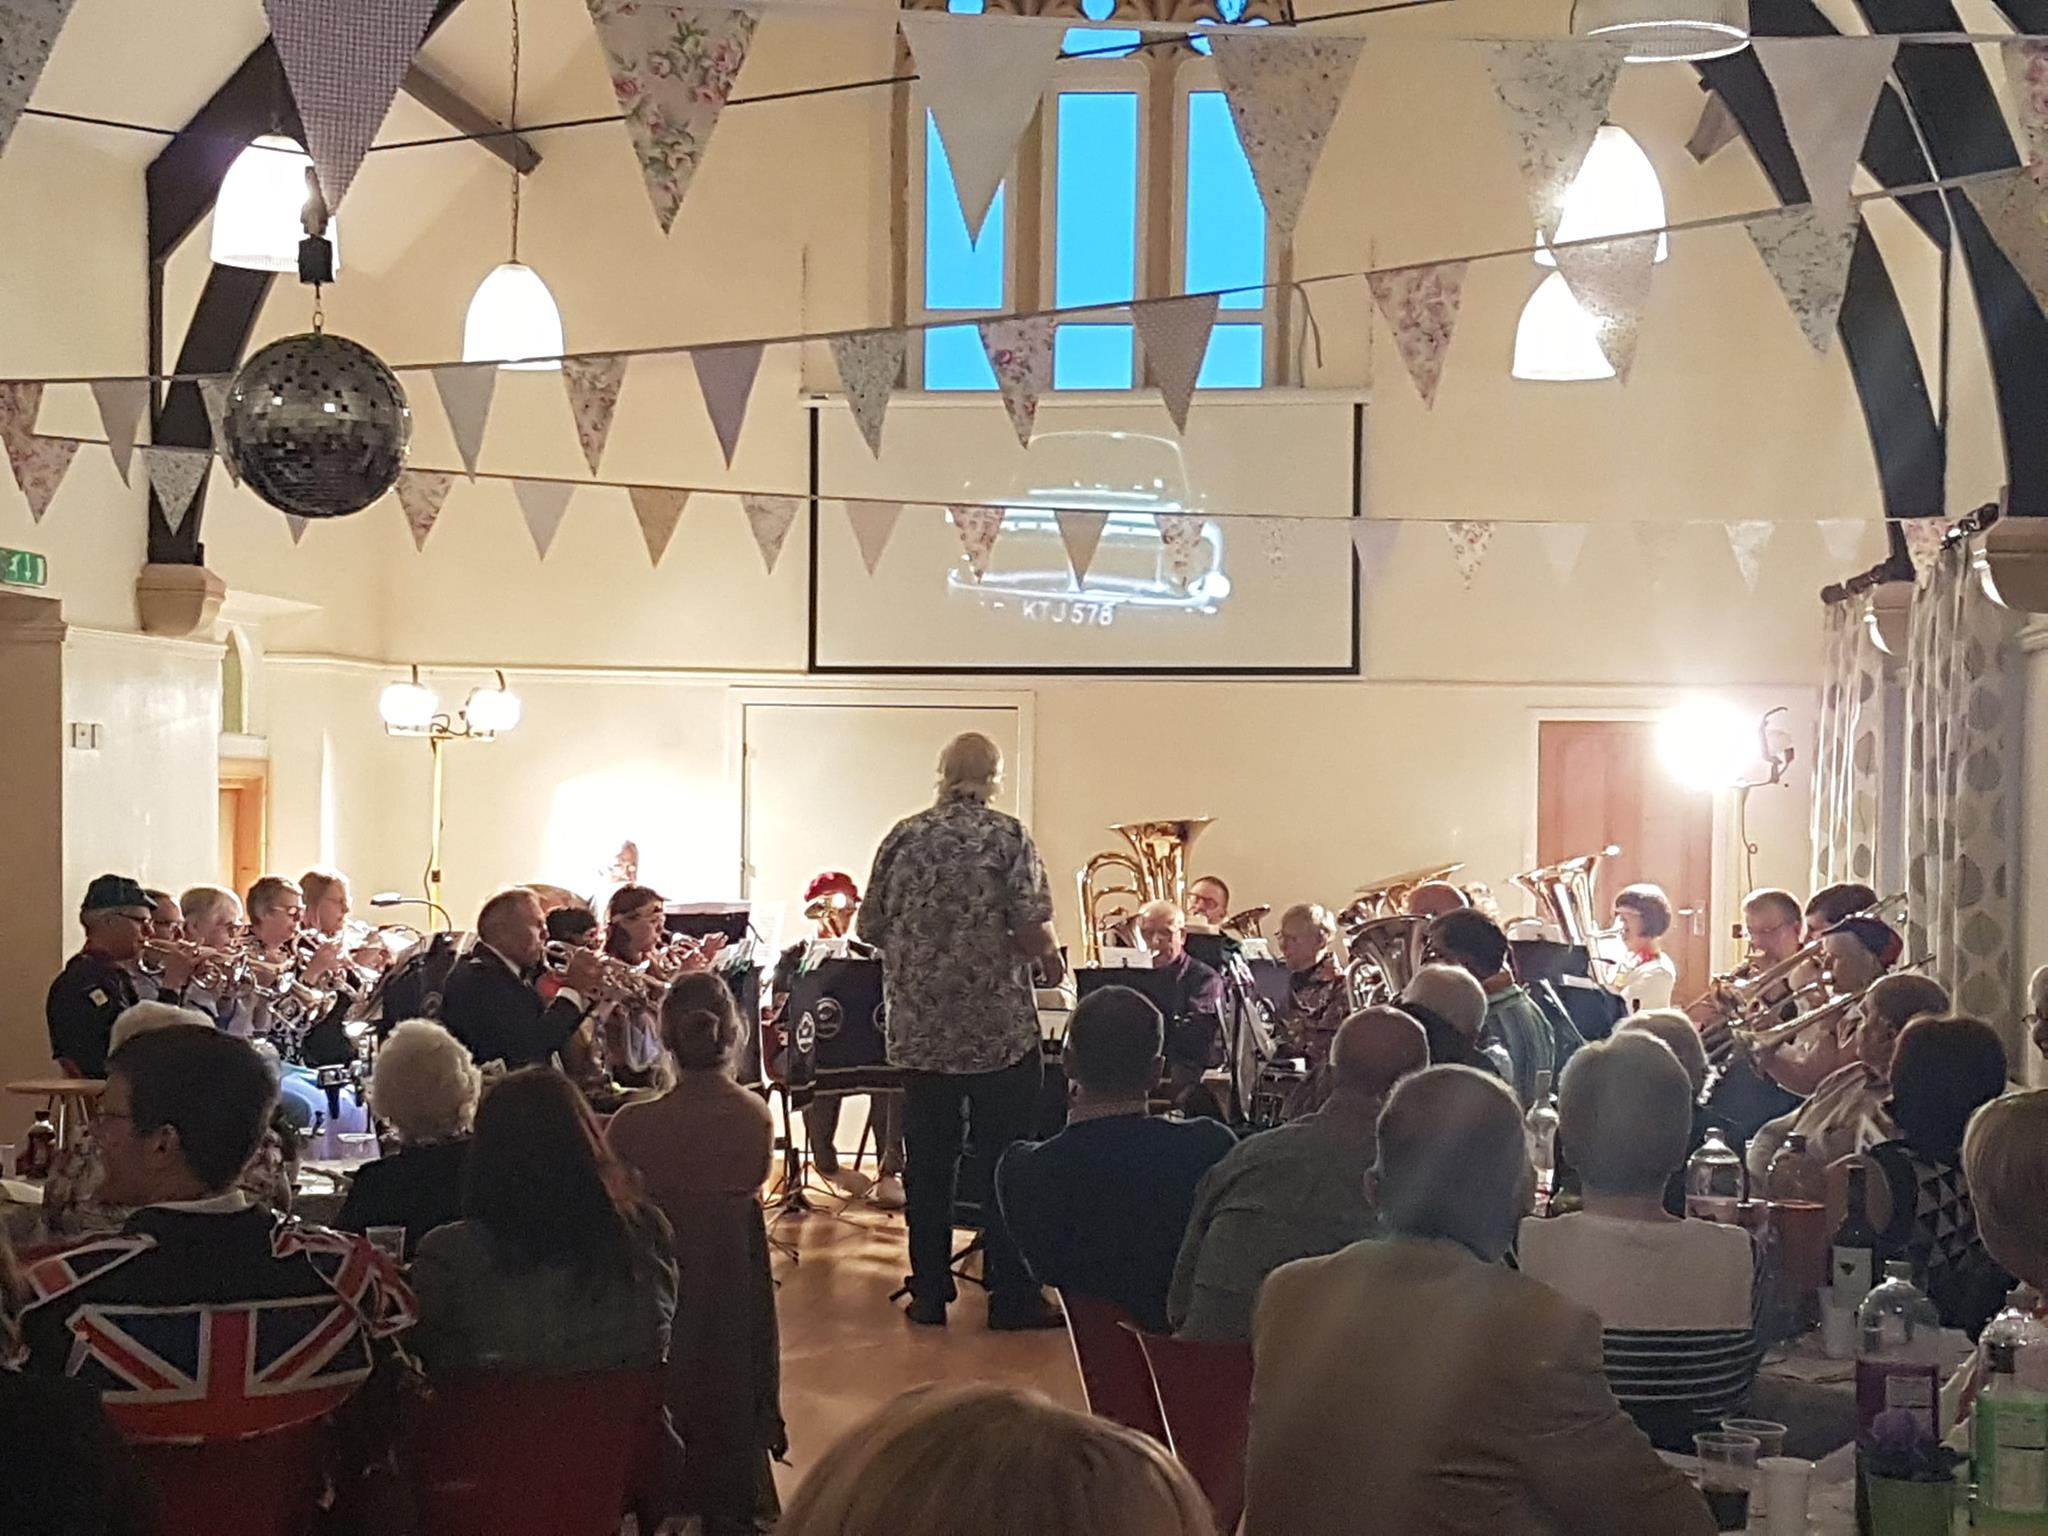 A shot of the band playing, taken from the back of the hall. You can see the bunting and glitter ball. the room is set for a party.